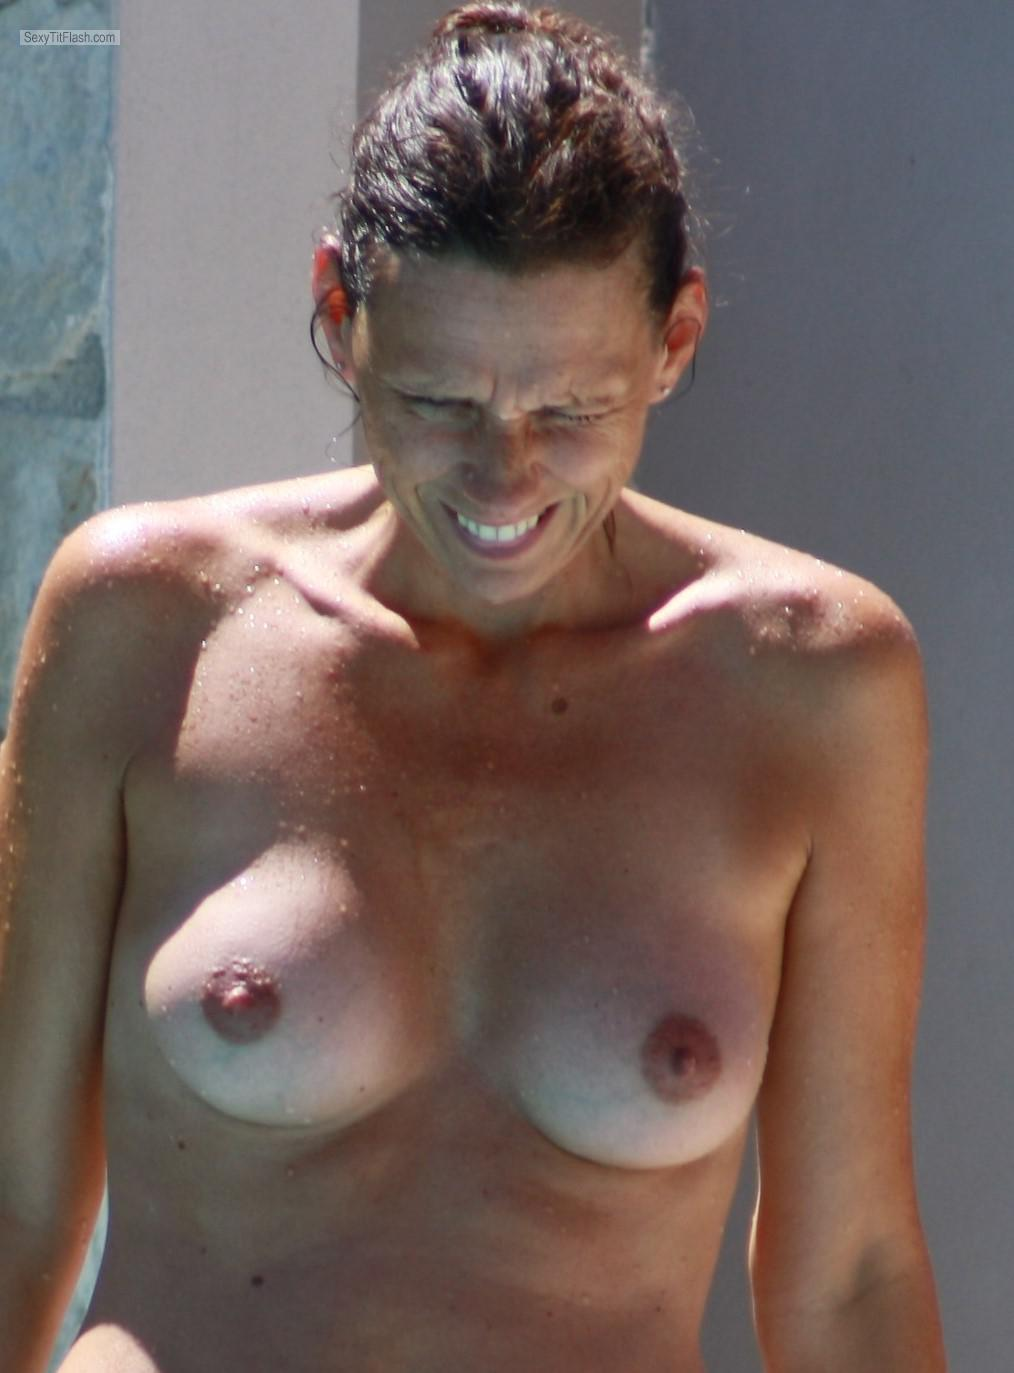 Tit Flash: Wife's Small Tits With Strong Tanlines - Topless Sweetie from Germany